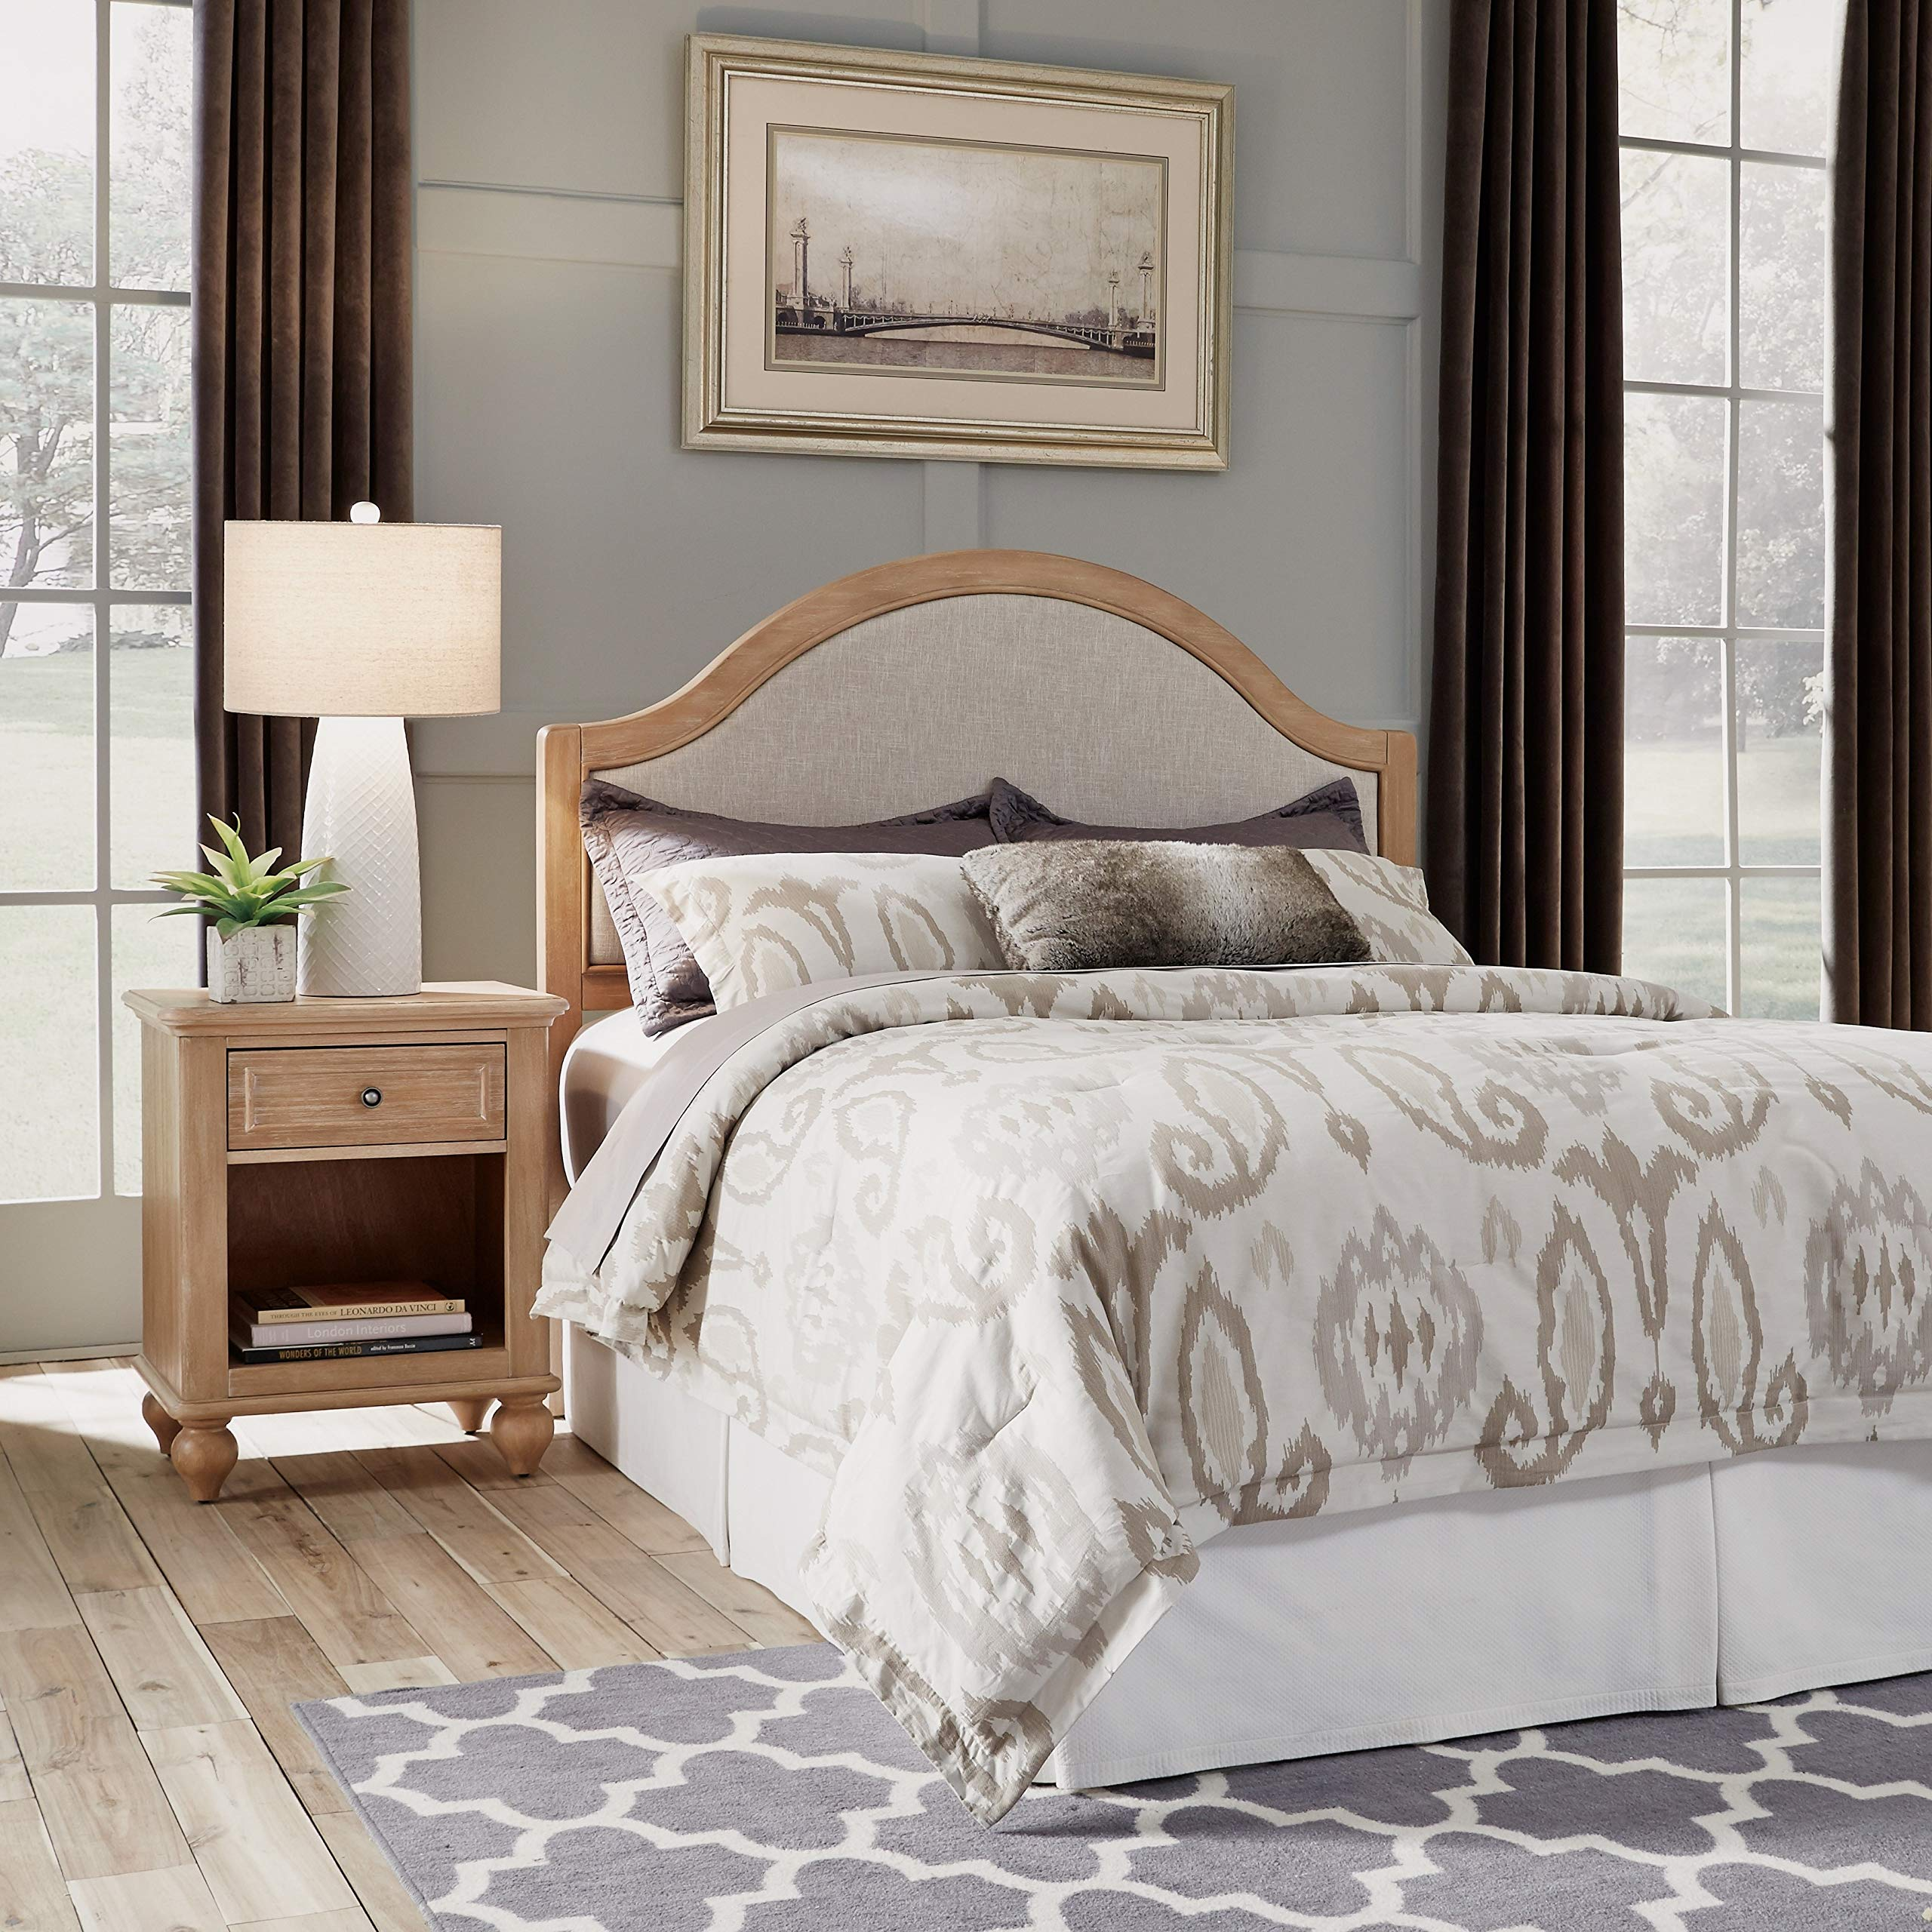 Cambridge Queen/Full Headboard Natural Country Wood Maple Finish by Unknown